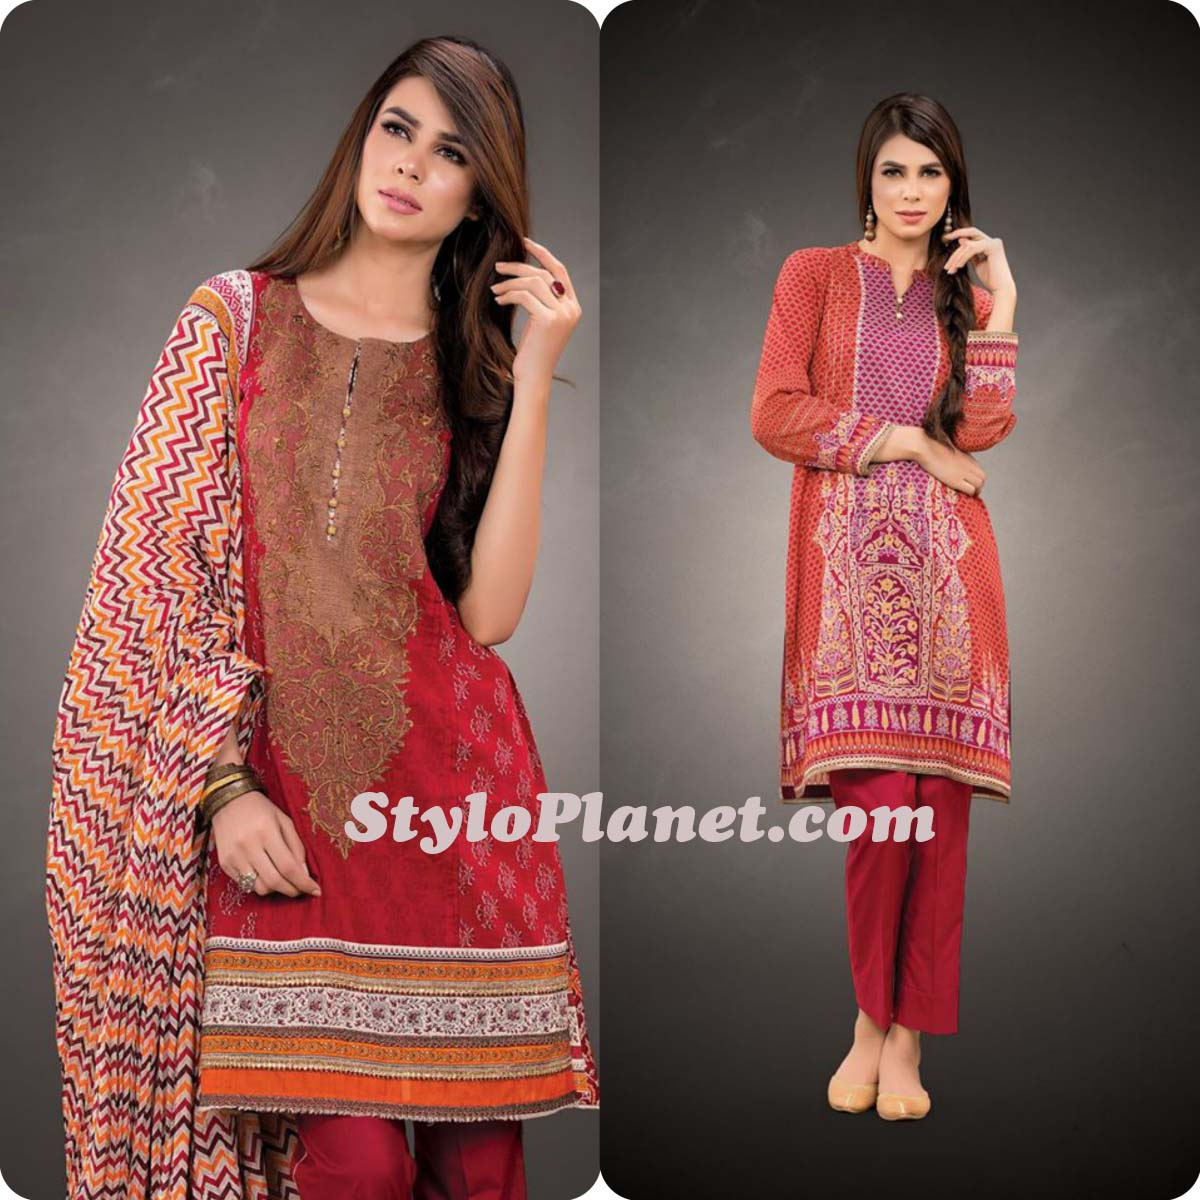 Kayseria New Eid-Ul-Adha Collection for Women 2016-2017 (9)